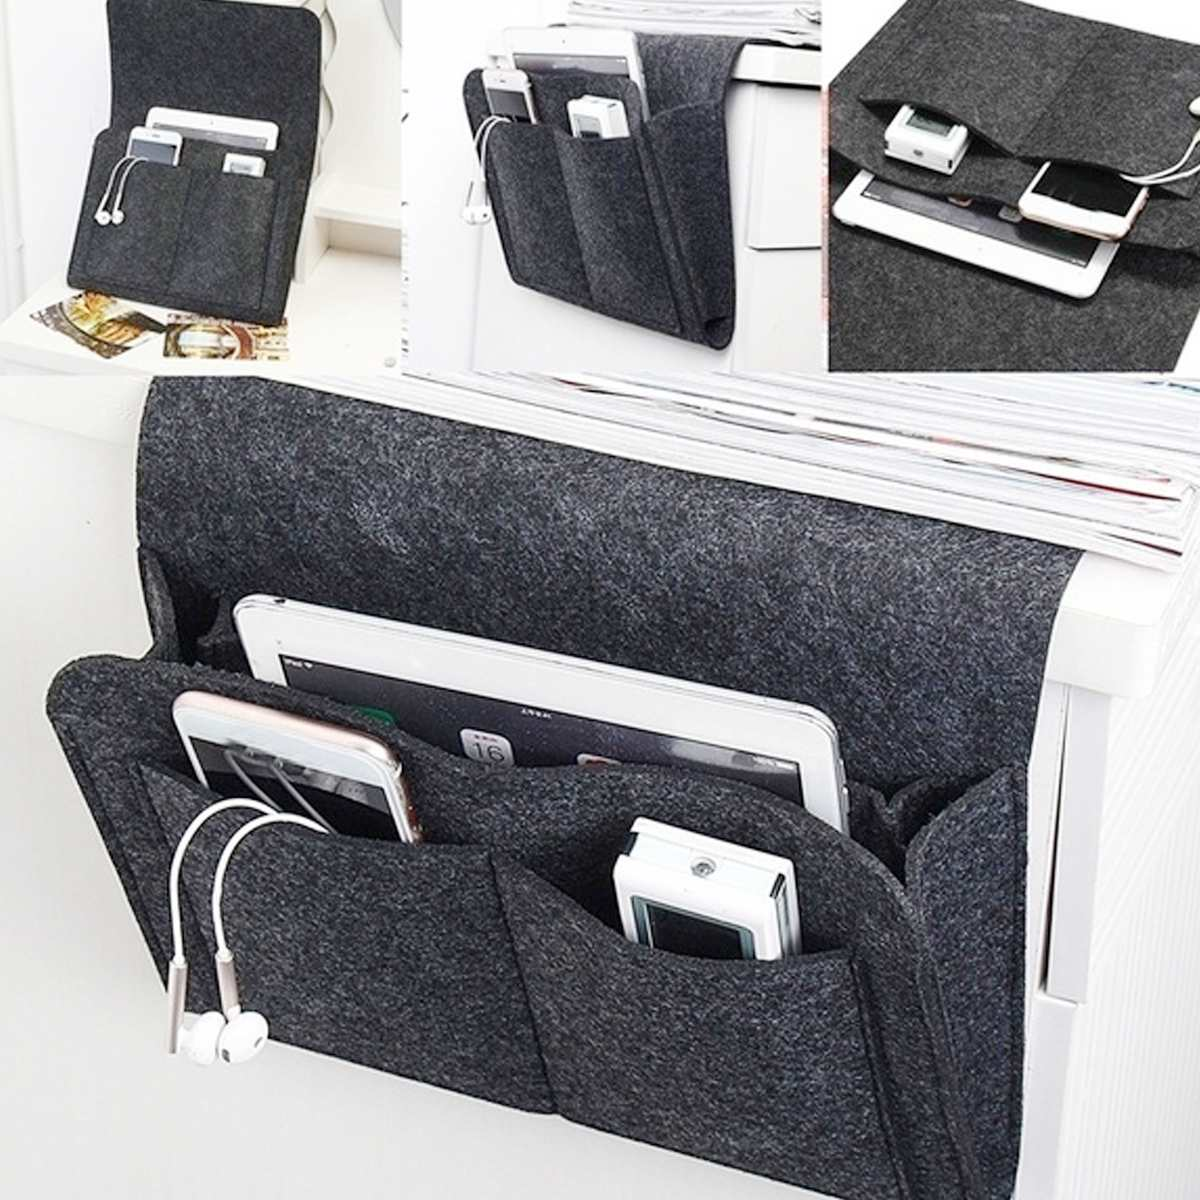 Felt Bedside Storage Organizer Bed Desk Bag <font><b>Sofa</b></font> TV <font><b>Remote</b></font> Control Hanging <font><b>Pocket</b></font> Organizer <font><b>for</b></font> Bedroom College Dorm Room image